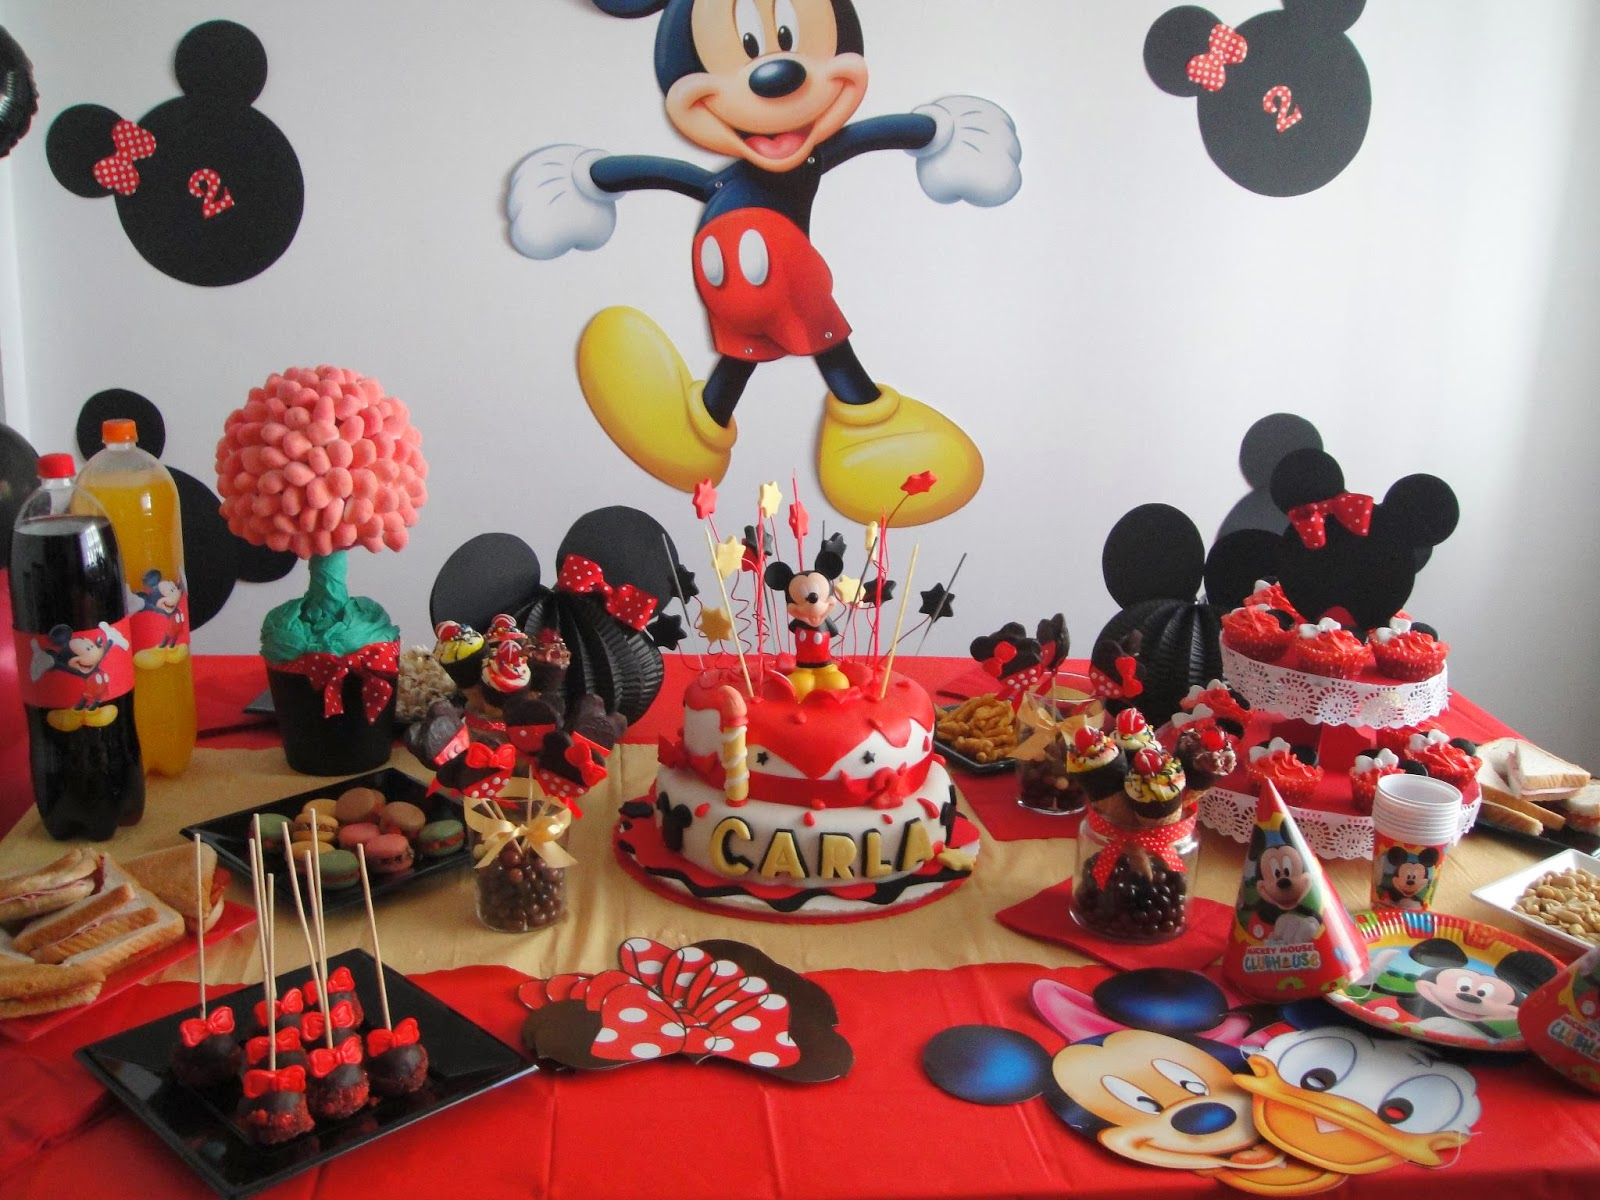 Sue os de az car mesa dulce mickey for Mesa de cumpleanos de mickey